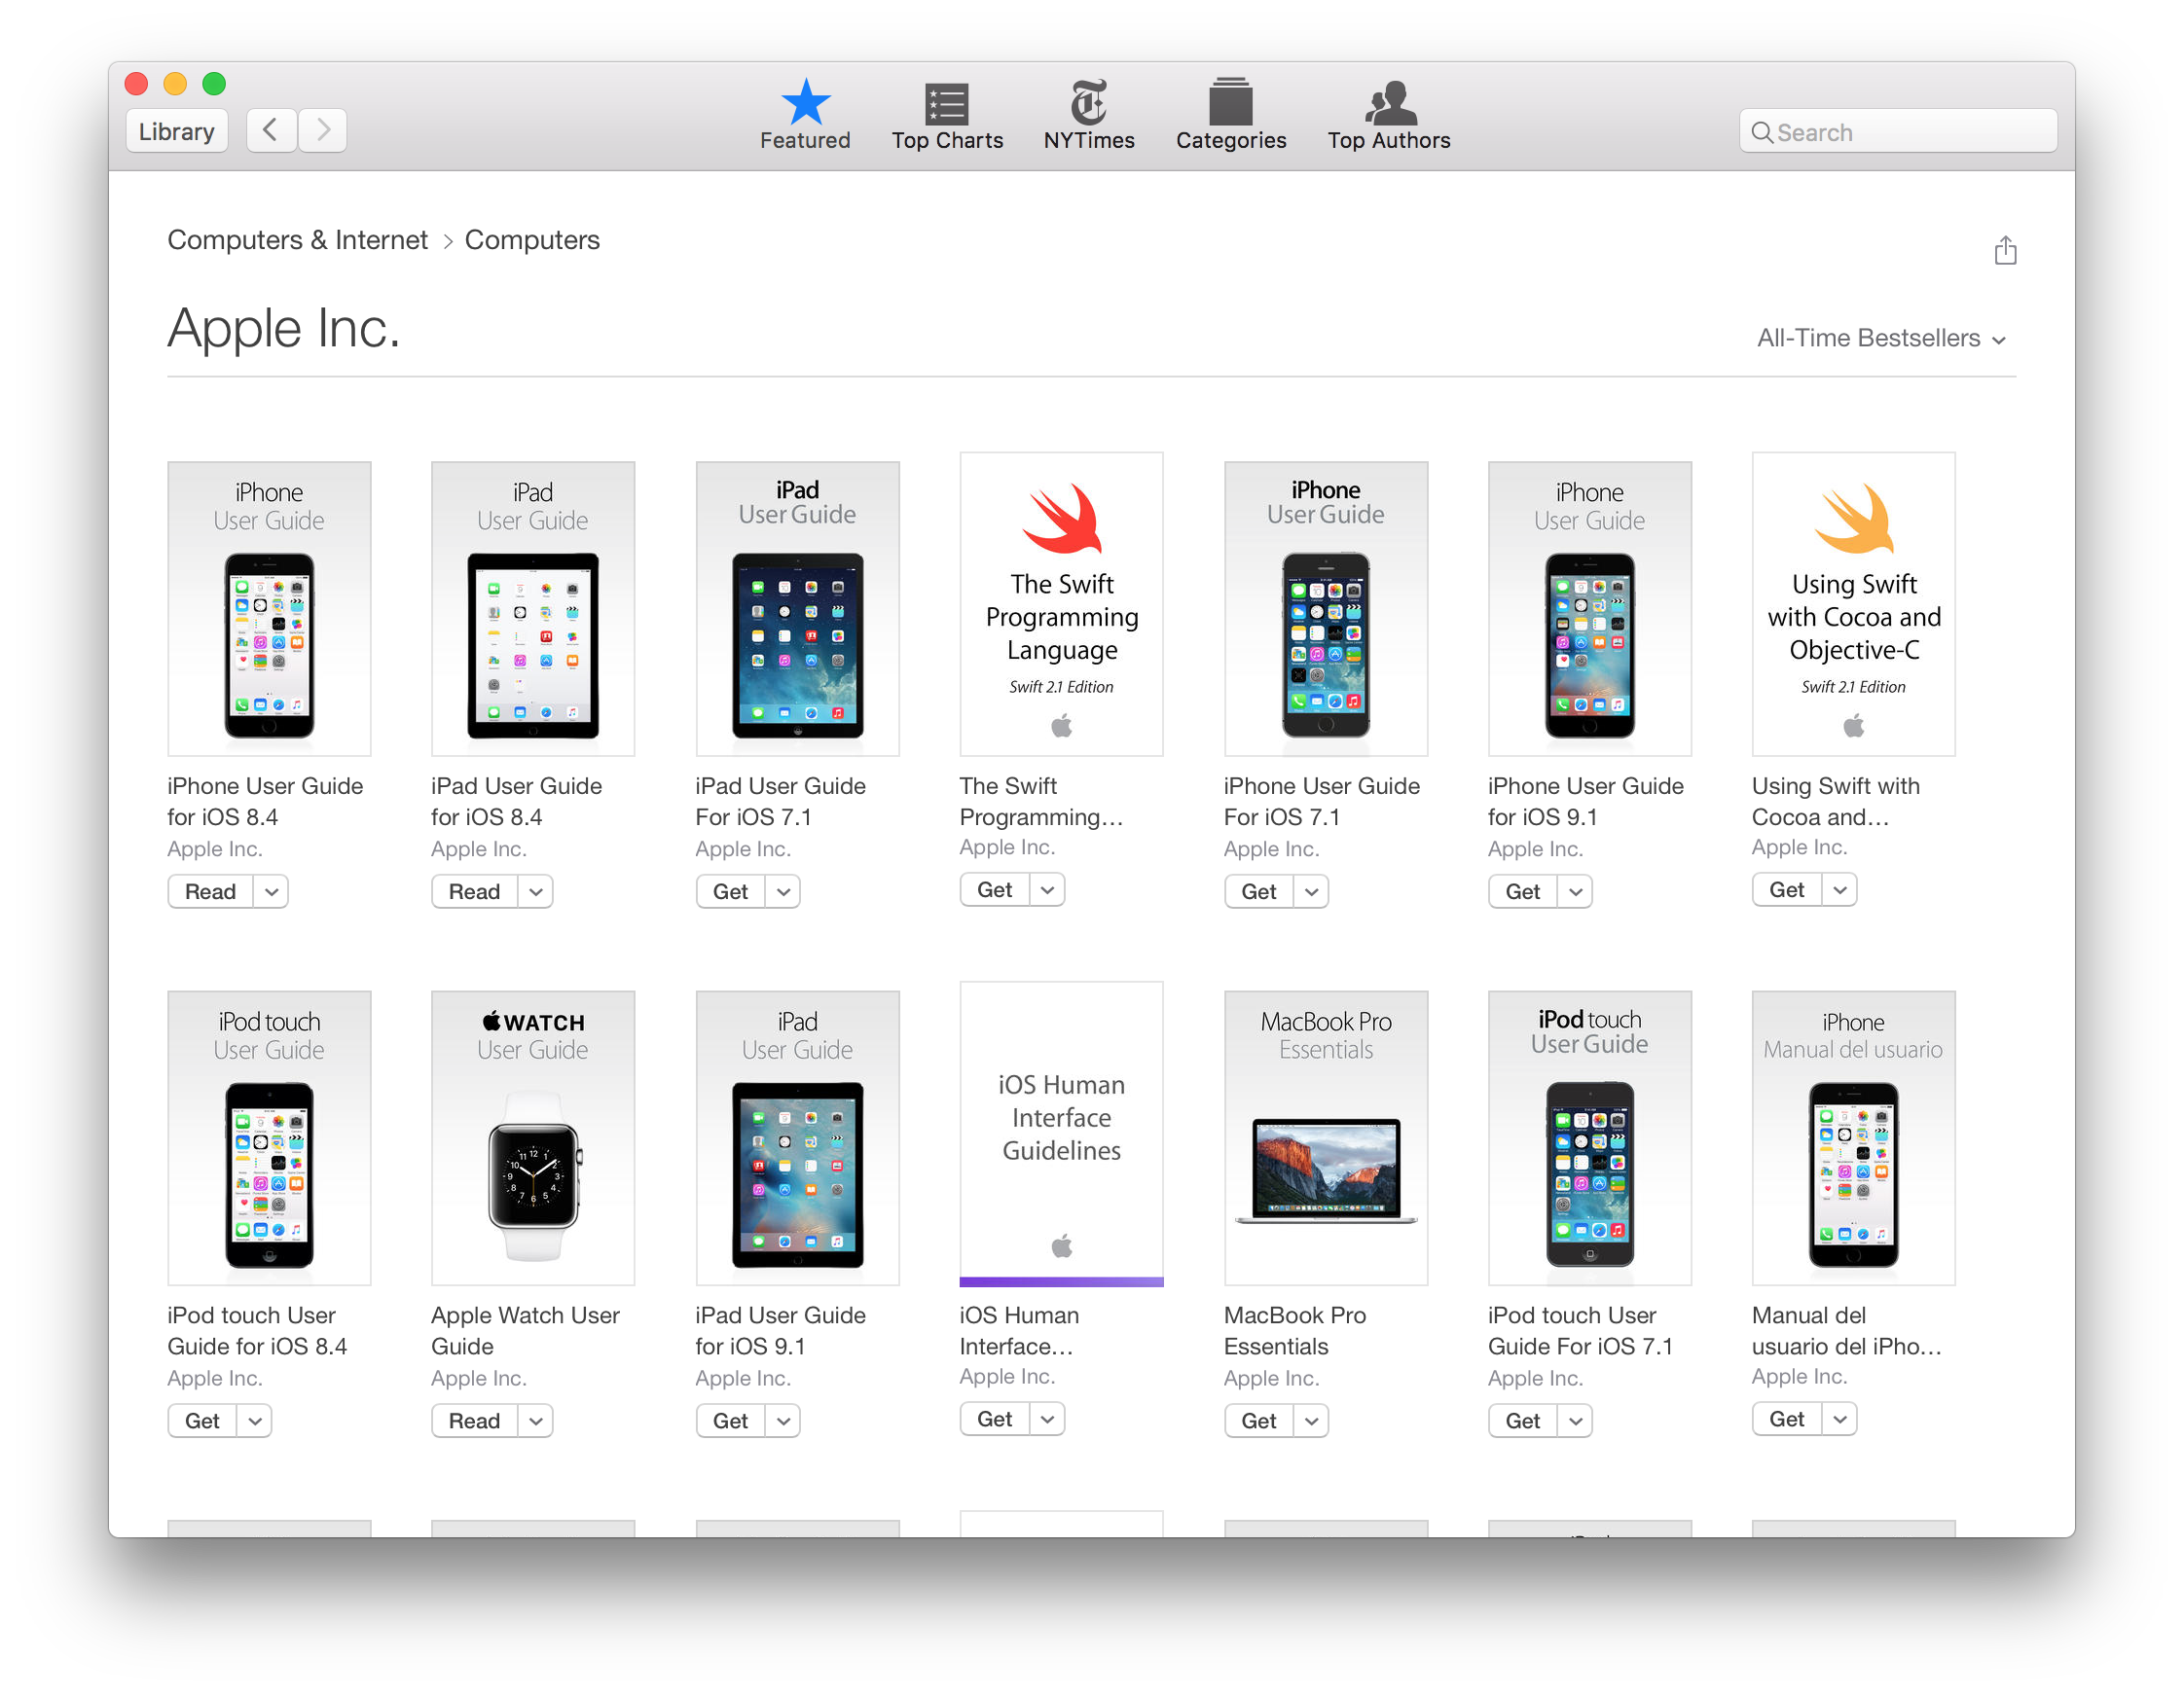 Apple's iBooks on the Mac